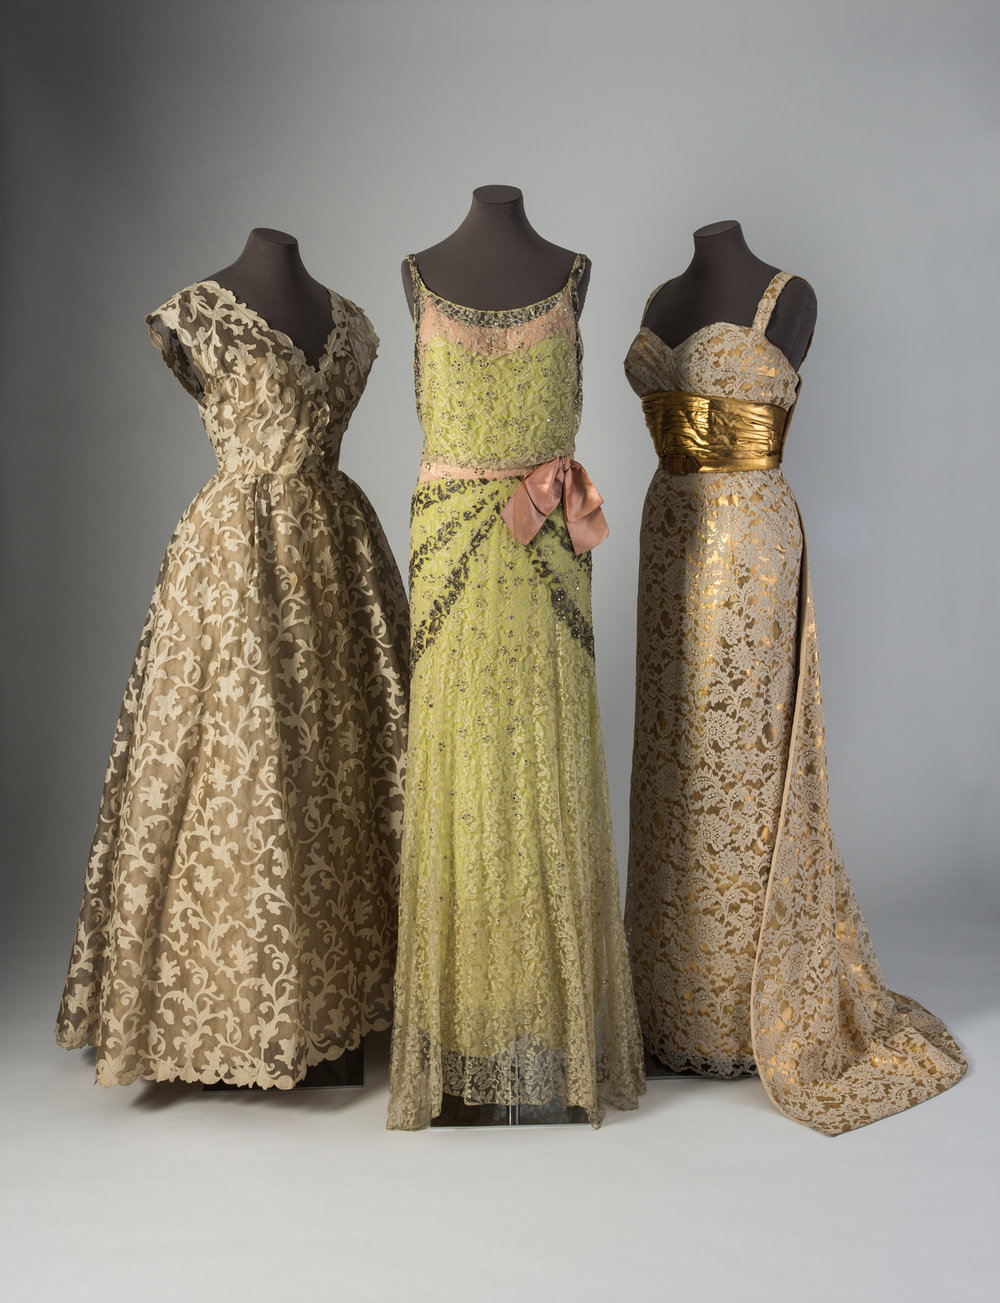 Photo courtesy Fashion Museum Bath.